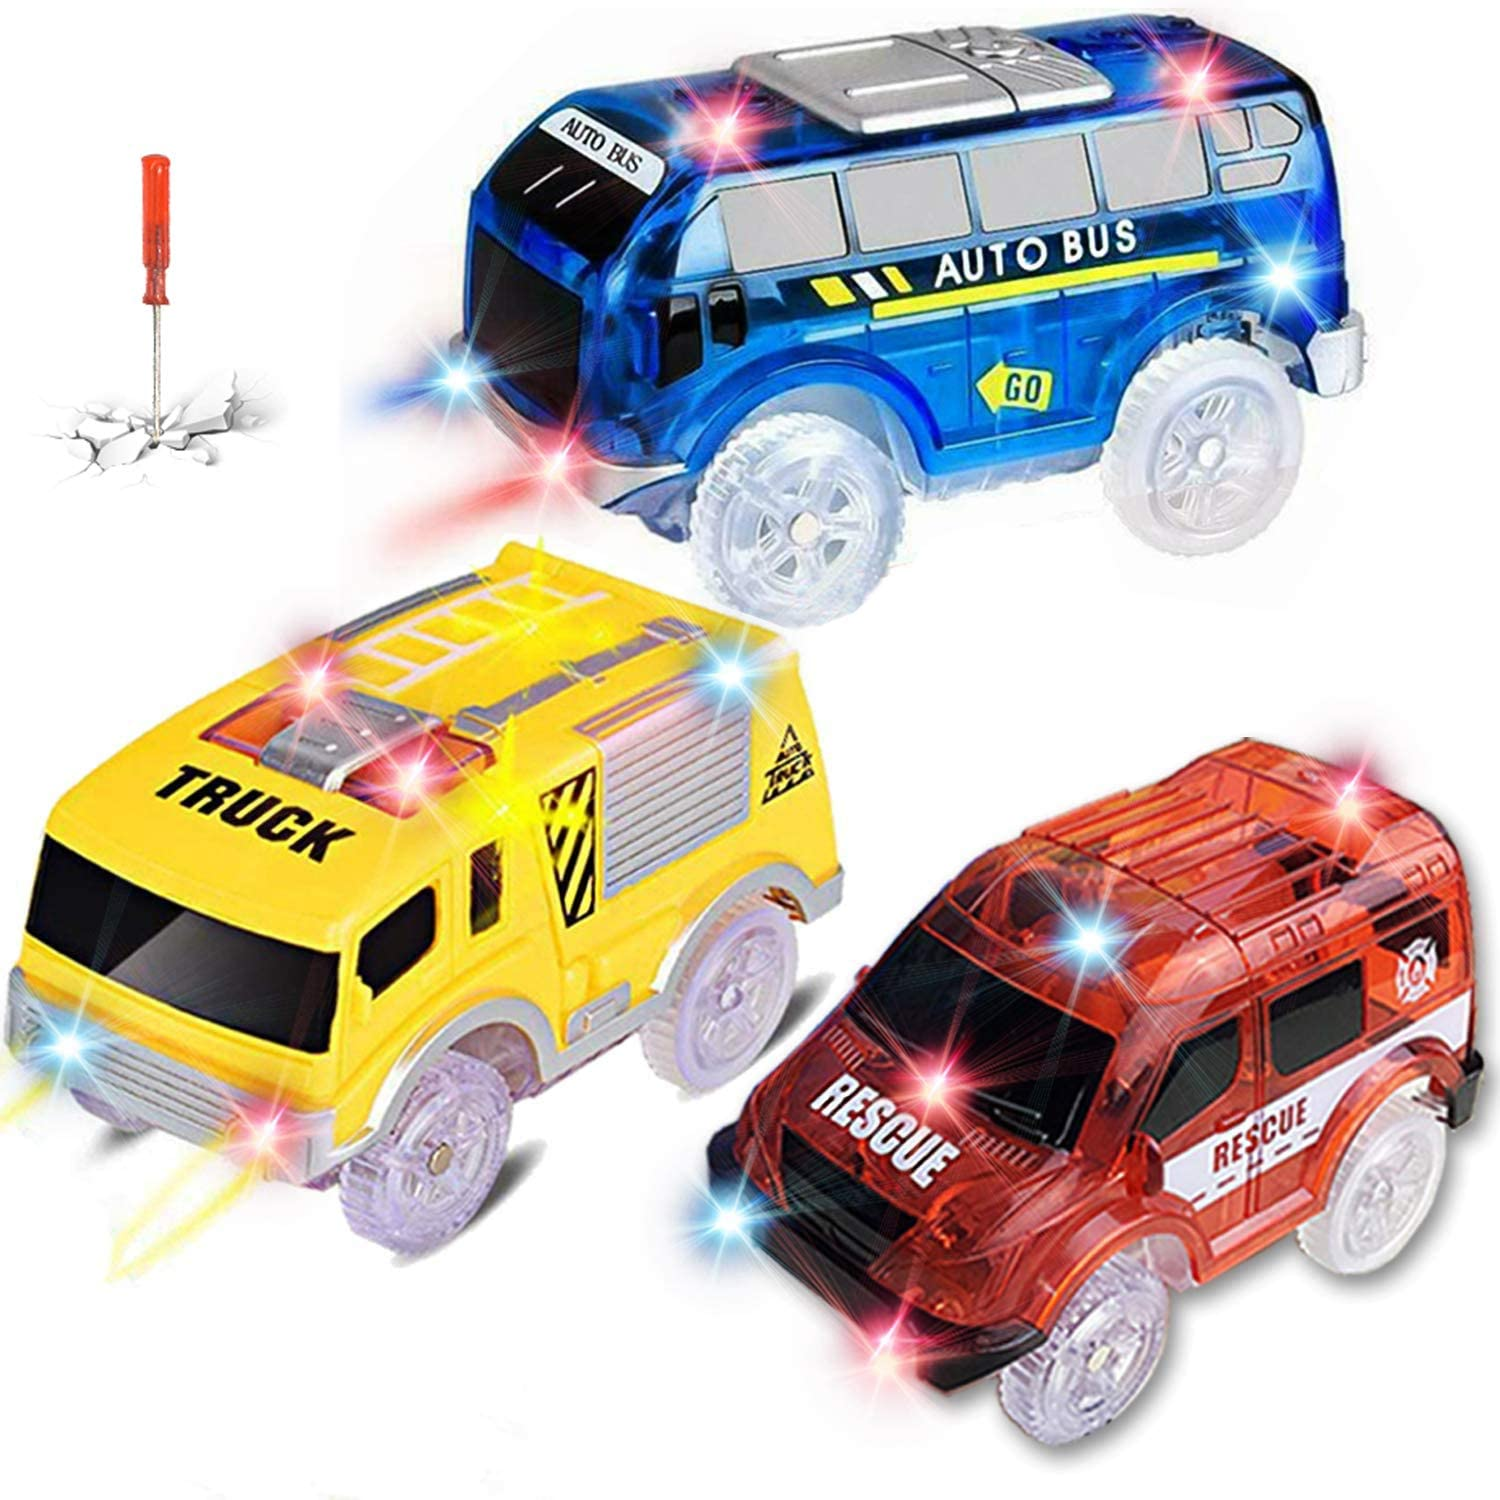 Track Cars for Kids, 3 Pack Replacement Track Cars Compatible with Magic Tracks Glow in the Dark, Toy Cars with 5 Flashing LED Lights for Most Race Tracks Only Light Up Toy Cars Track Car Accessories